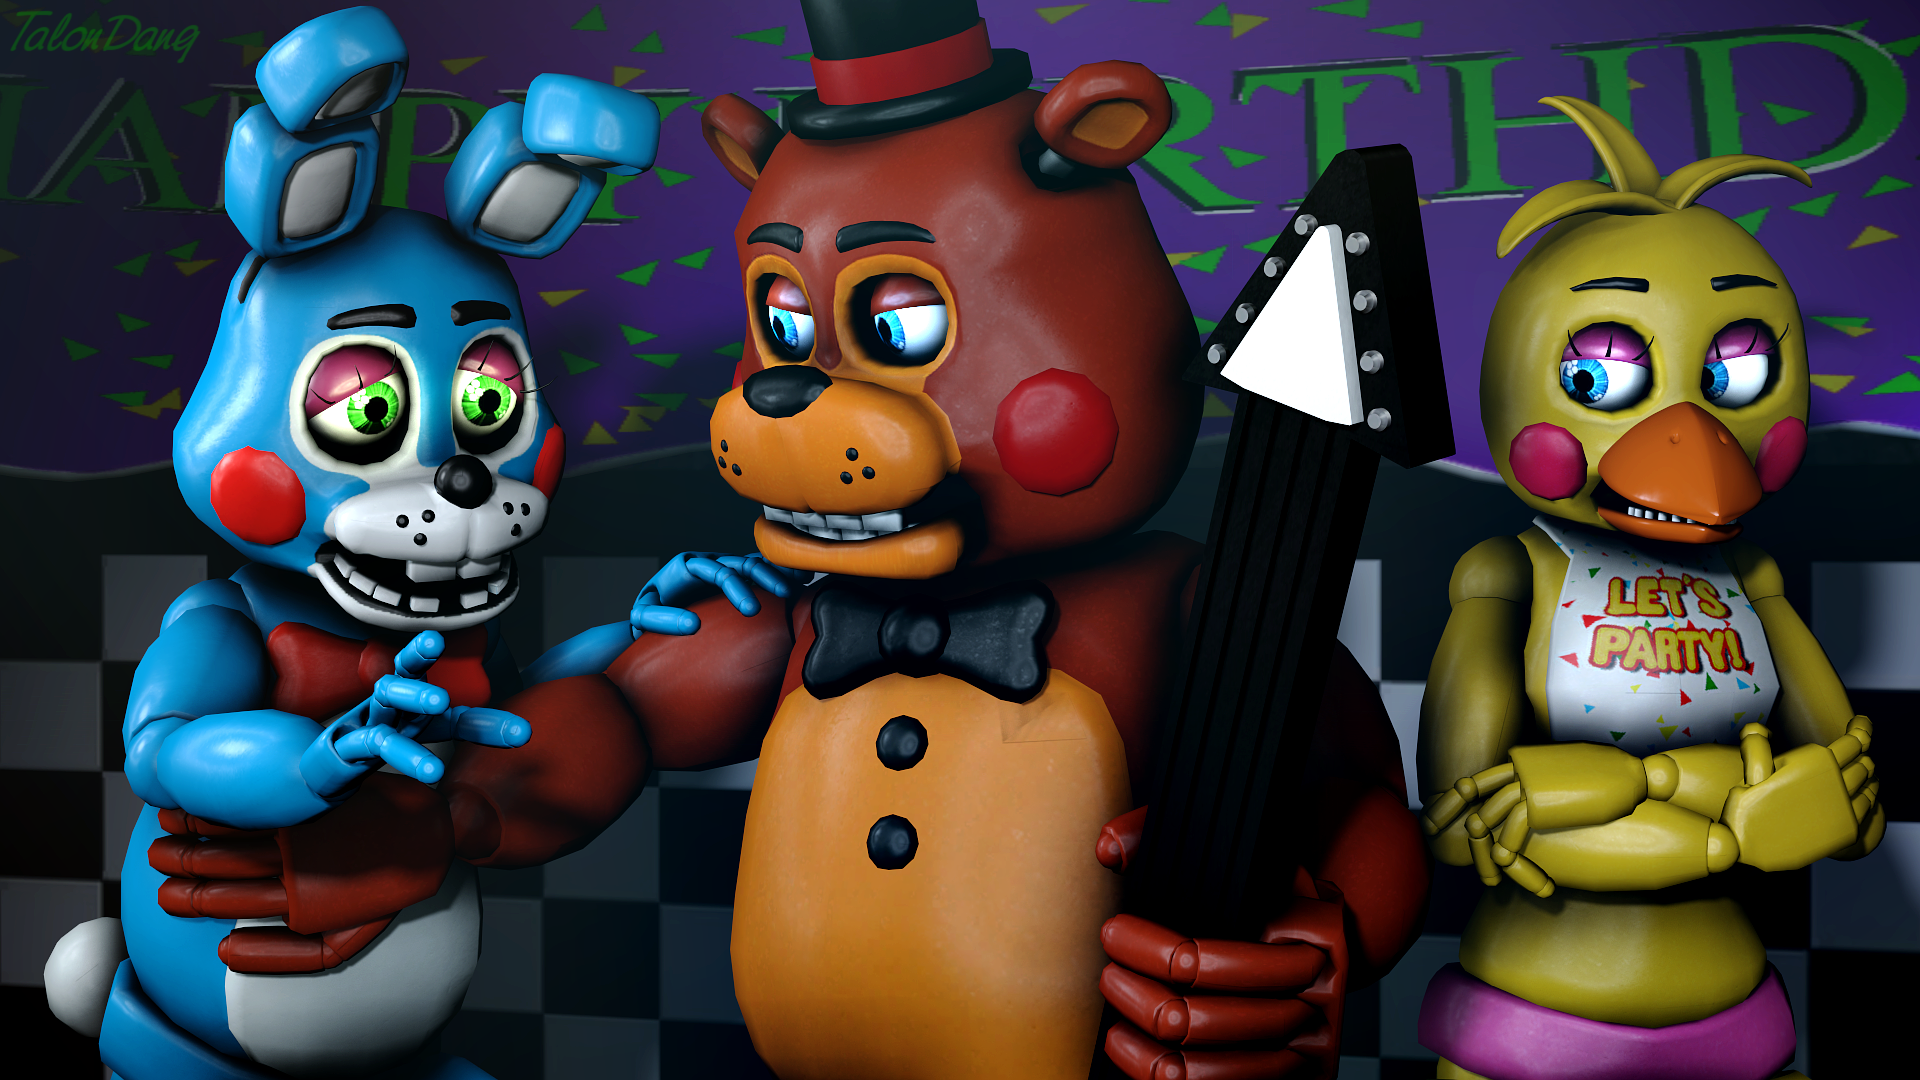 Old Freddy Toys : Your job is done bonnie toy freddy by talondang on